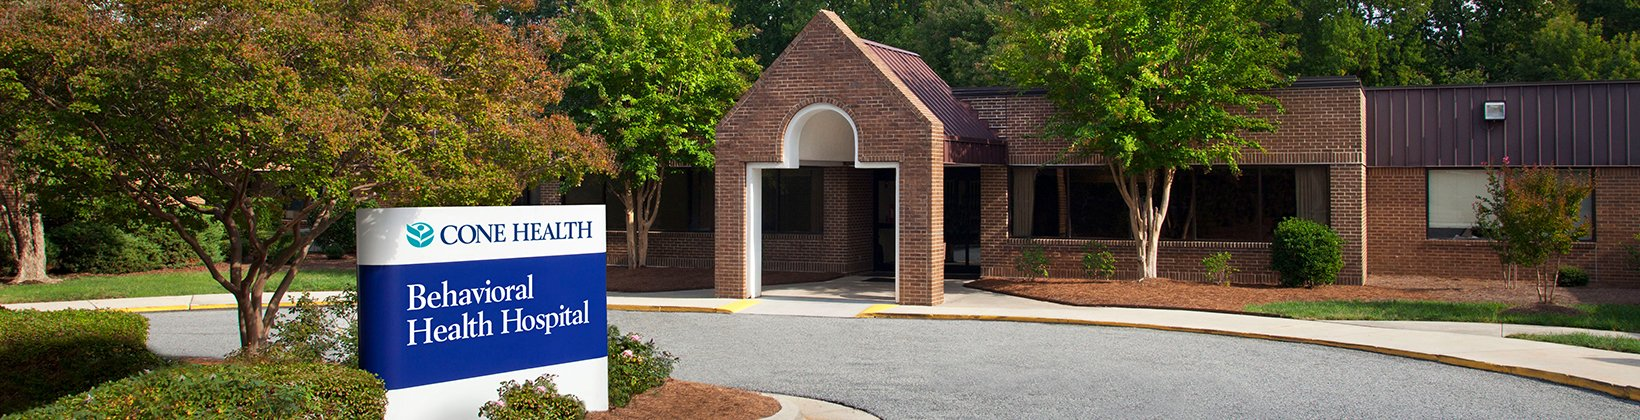 Cone Health Behavioral Health Hospital Greensboro Nc Cone Health